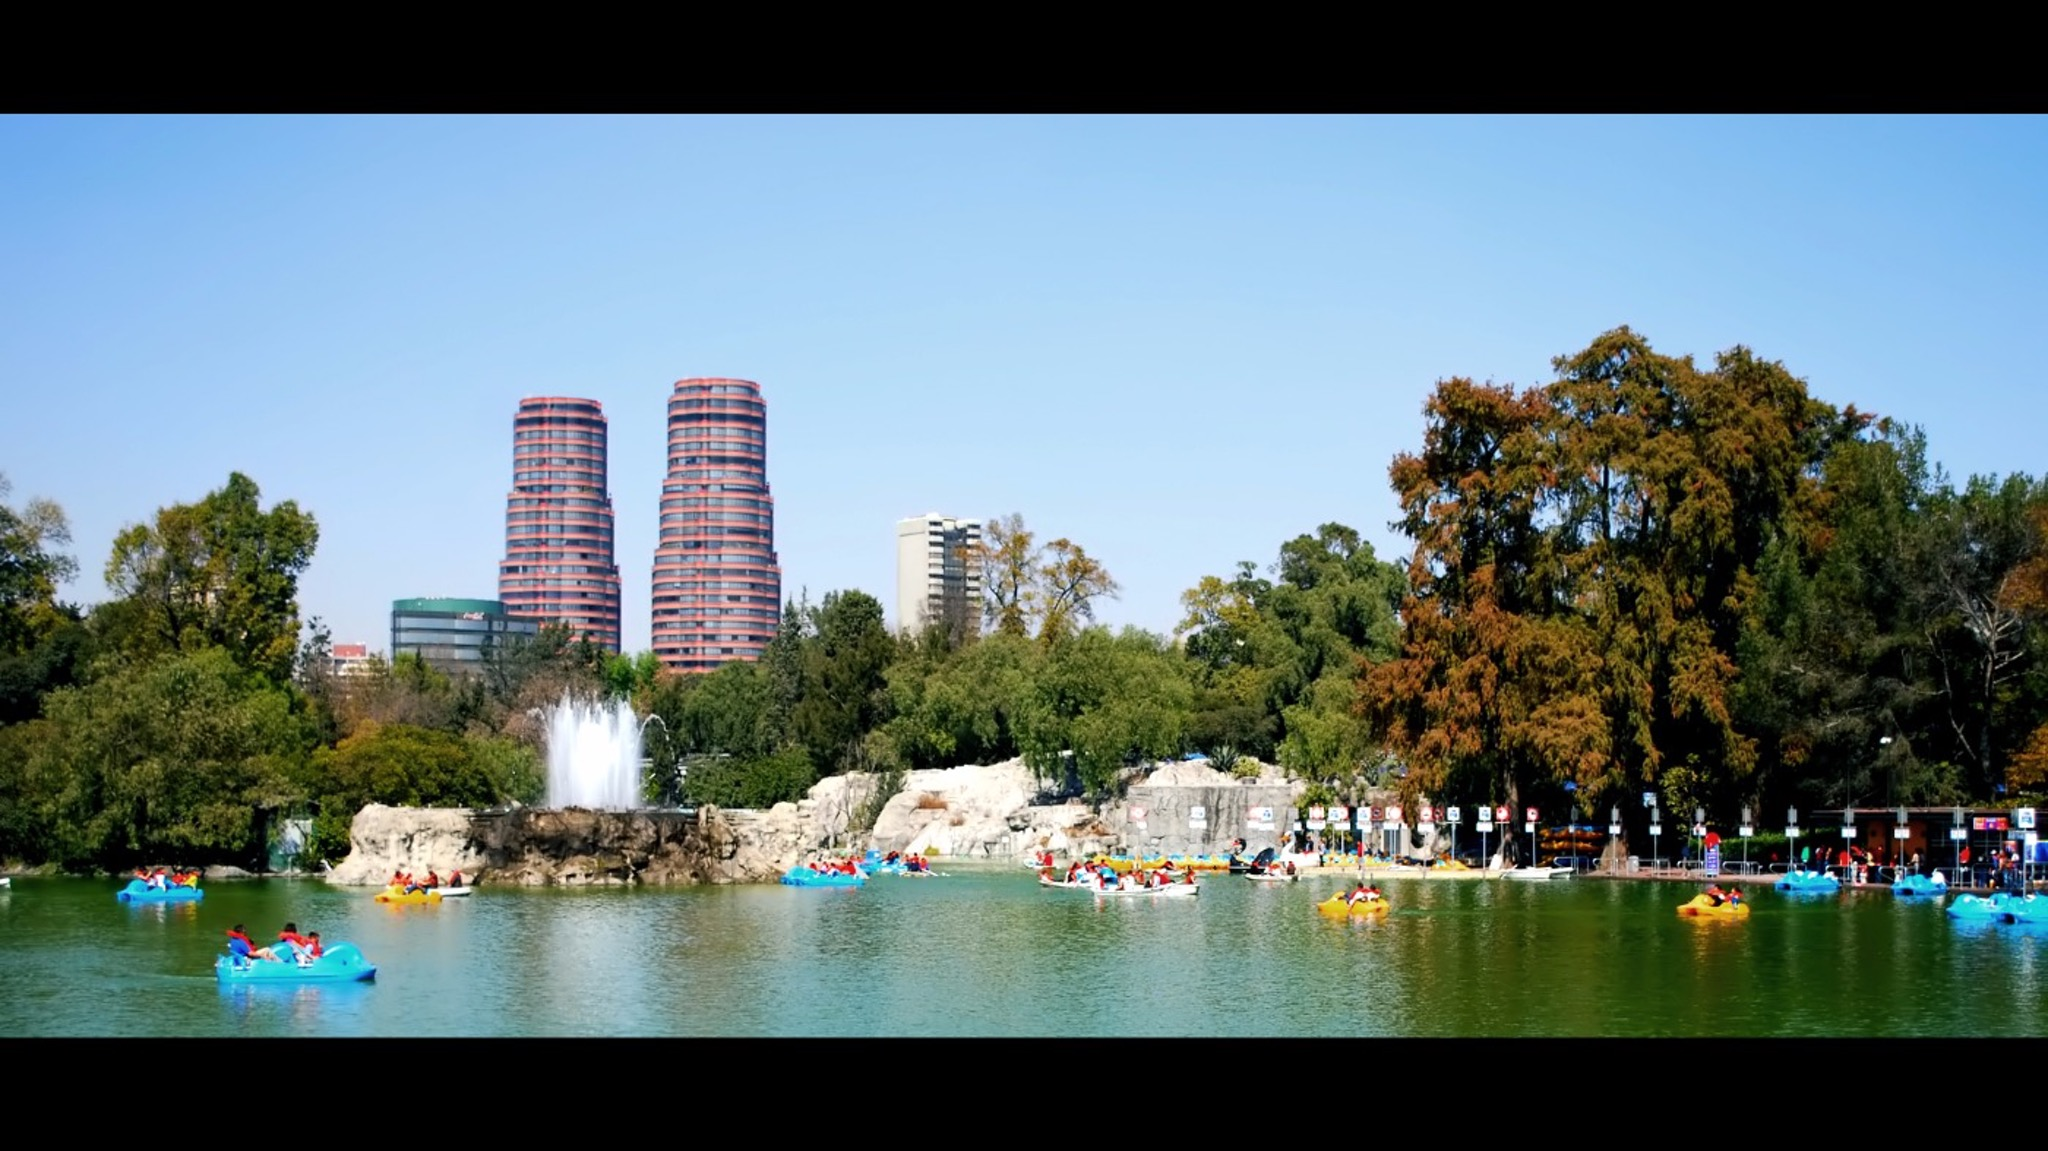 Chapultepec Forest Visual Experience Tour in Mexico City.